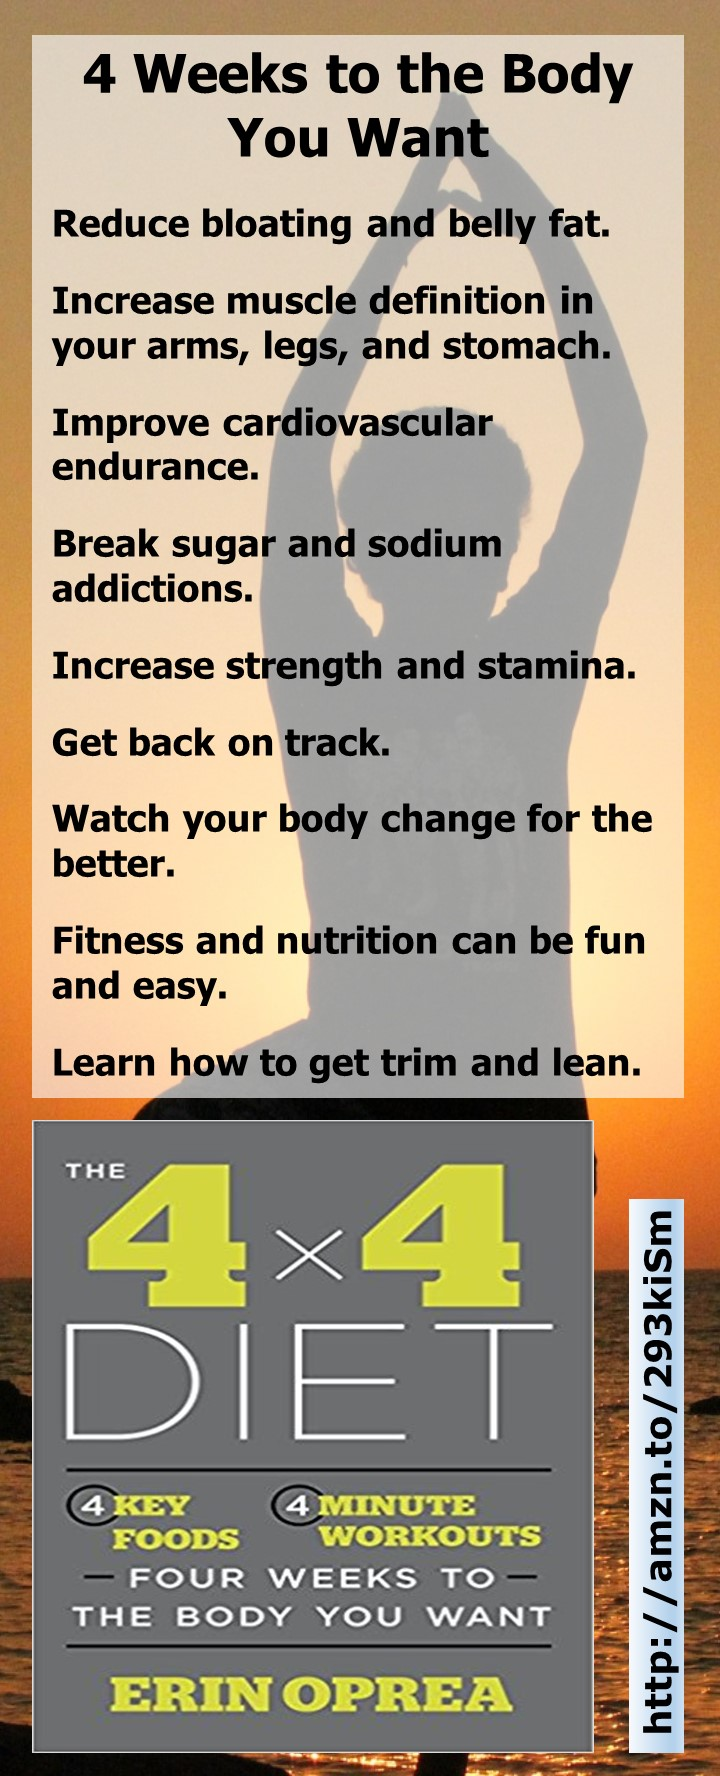 The 4x4 Diet by Erin Oprea: Discover how to reduce bloating, reduce belly fat, increase muscle definition, break sugar addiction, increase strength, and get back on track.